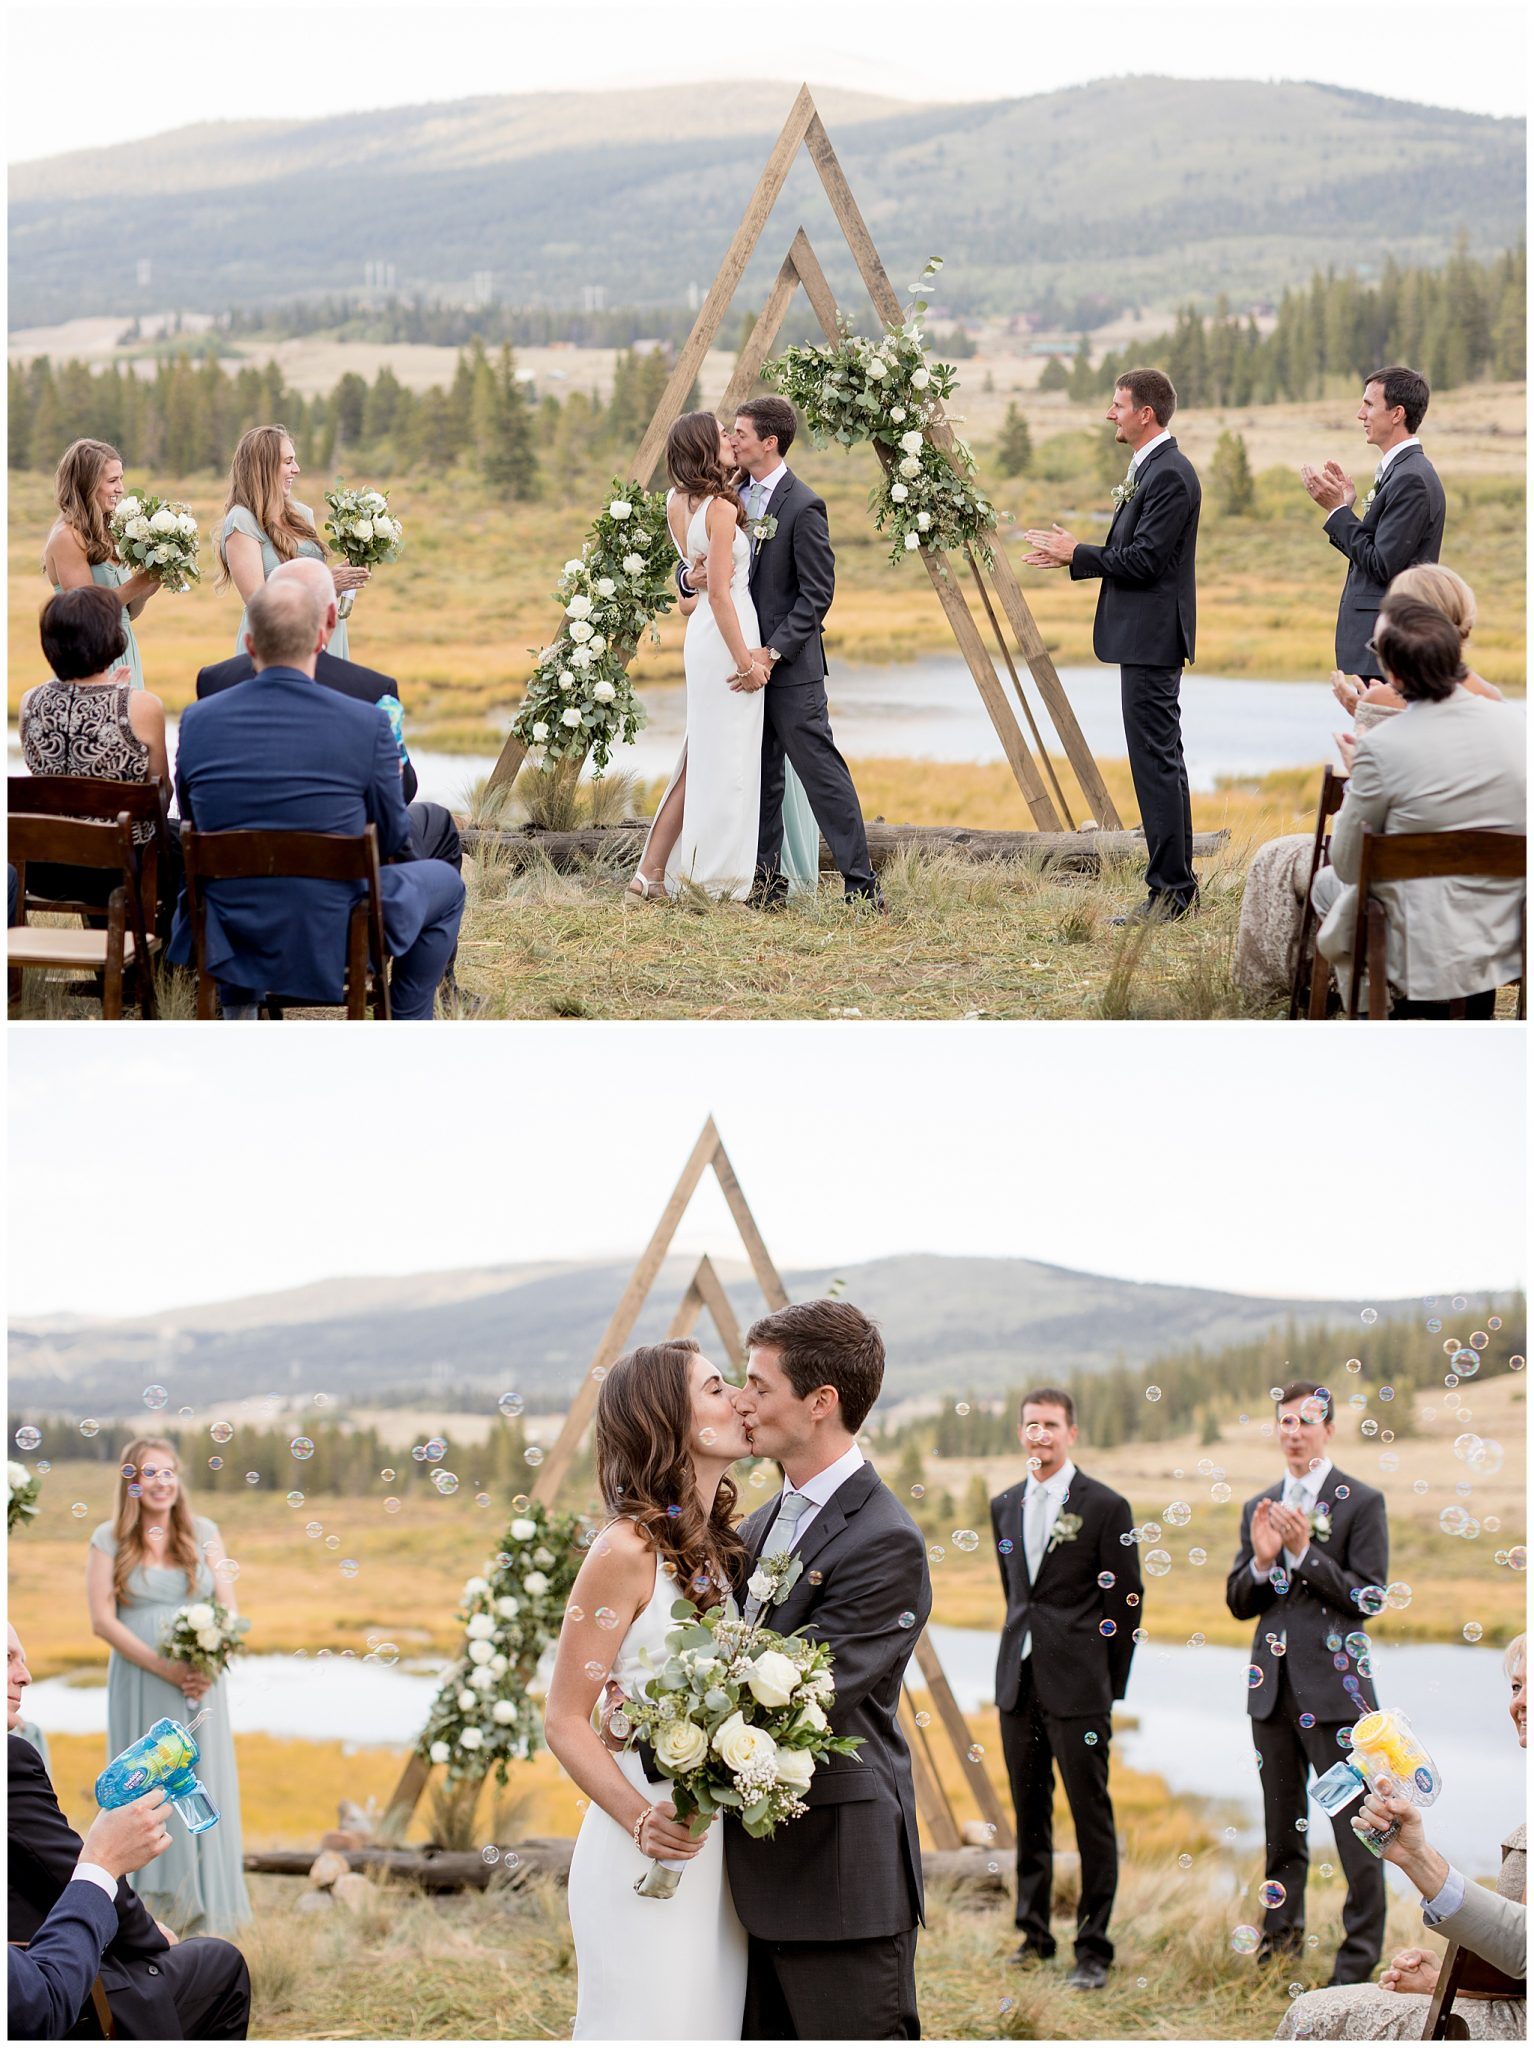 First Kiss at their Breckenridge Colorado Wedding Ceremony